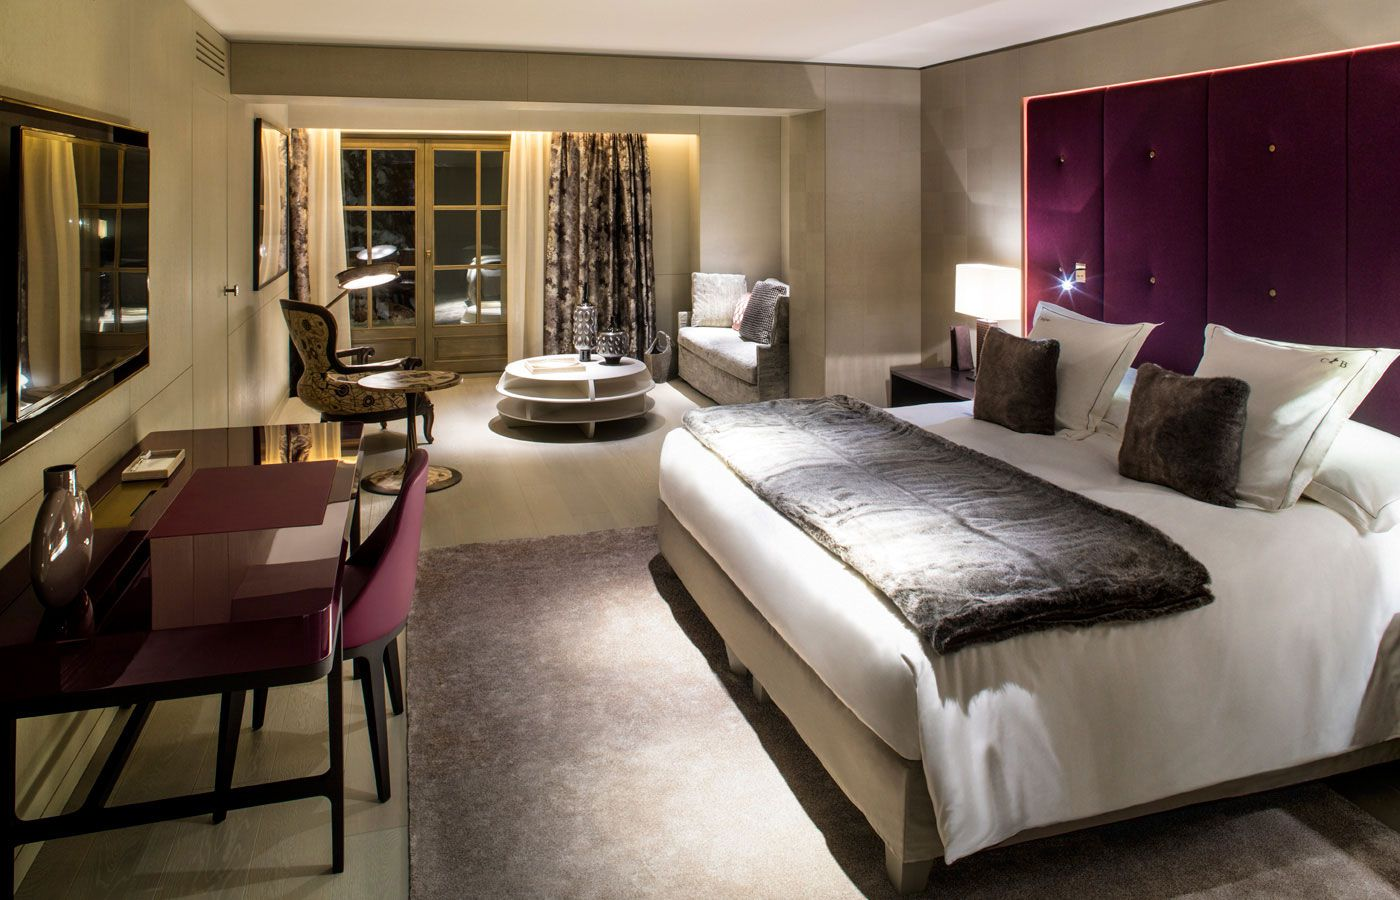 the cheval blanc in courchevel caandesign architecture and home design blog. Black Bedroom Furniture Sets. Home Design Ideas